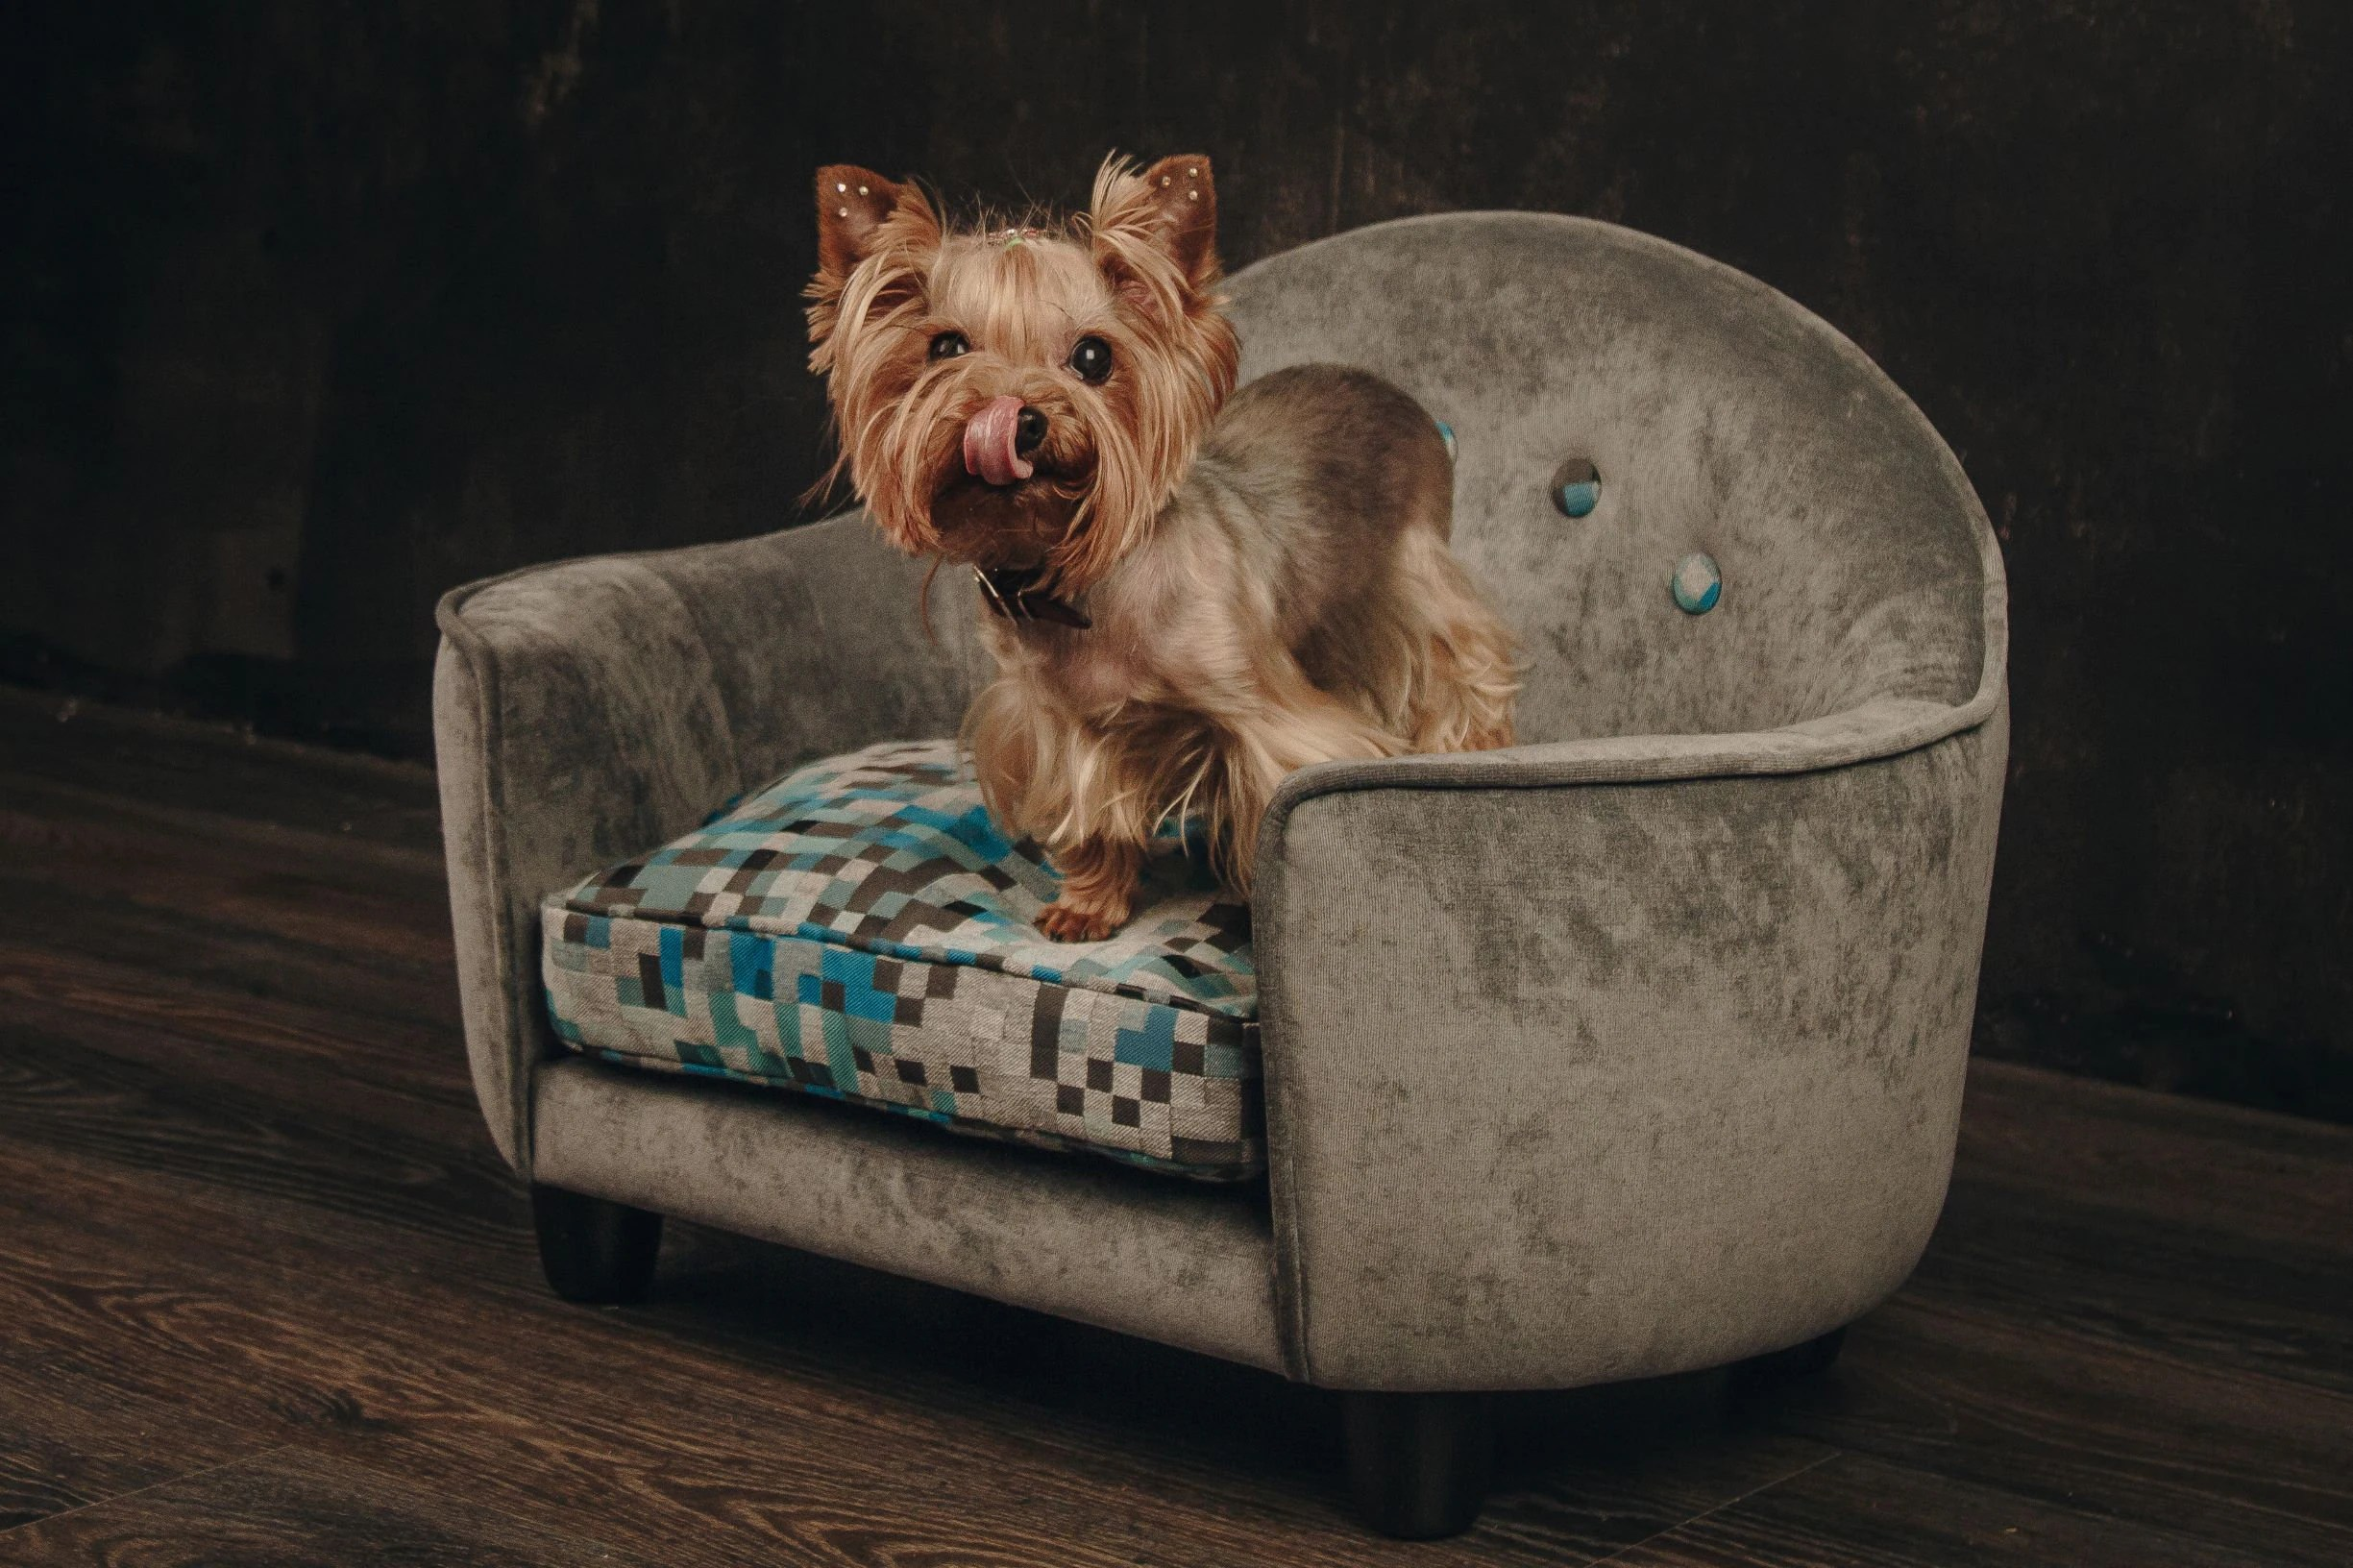 Dog Beds Pet Luxury Dog Bed With Memory Foam Orthopedic Dog Bed Pet Bed Dog Beds Raised Dog Bed Pet Furniture Small Dog Bed Bed For Dogs